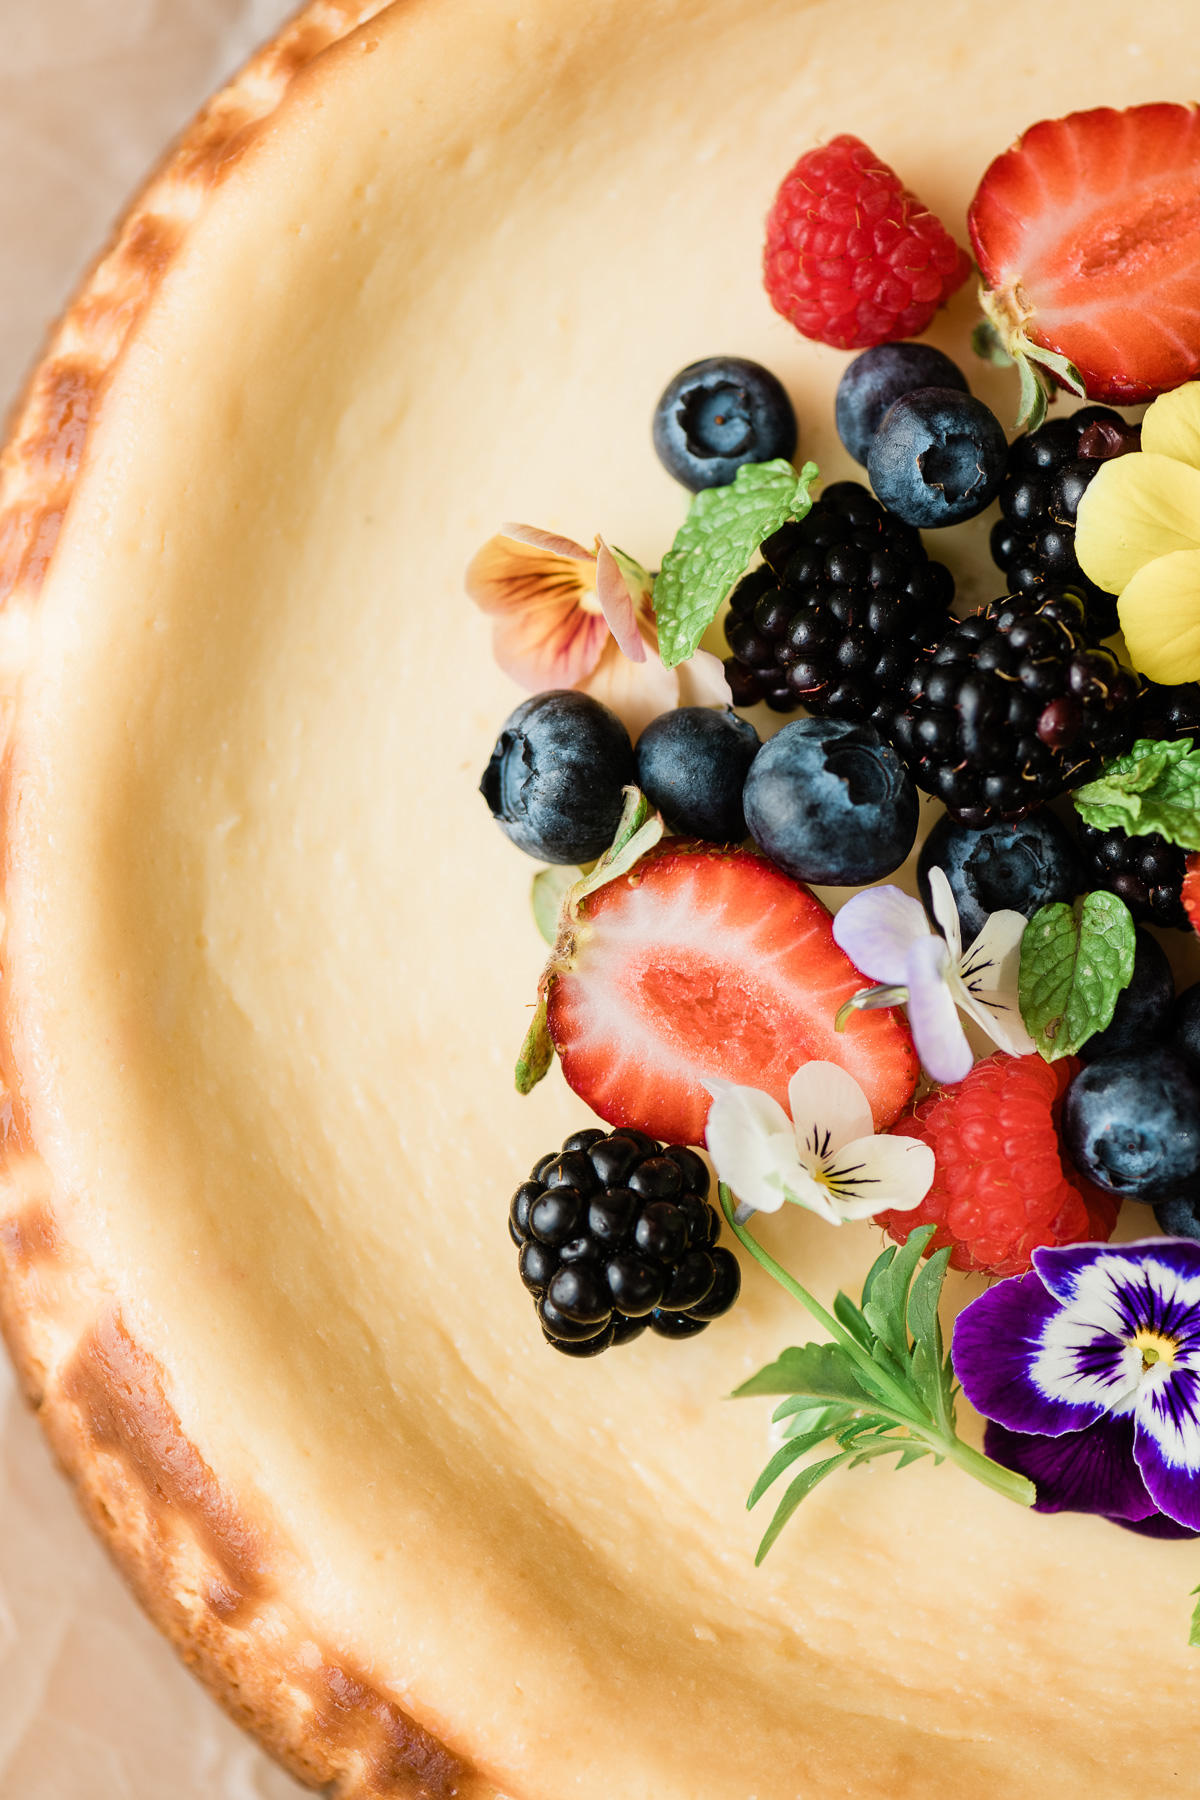 Lemon cheesecake topped with berries and edible flowers